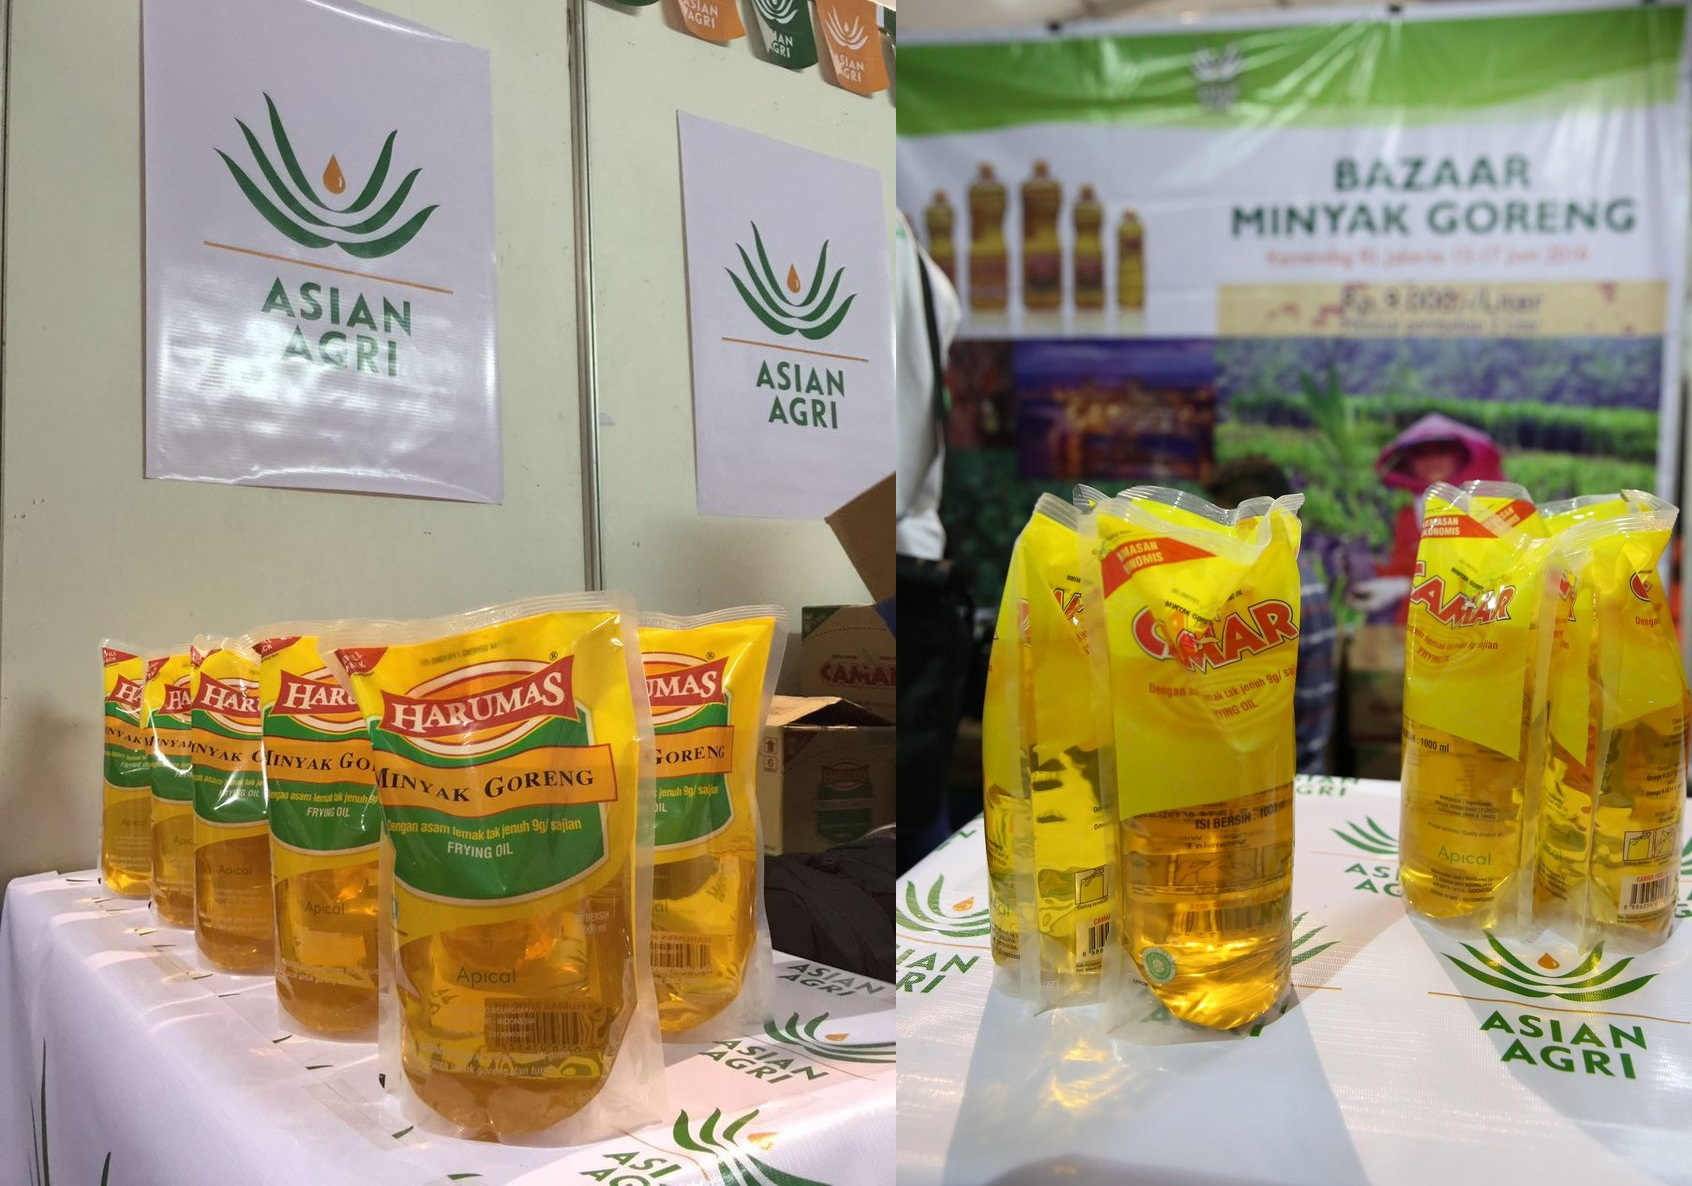 Apical's Cooking Oil Brands - Camar and Harumas